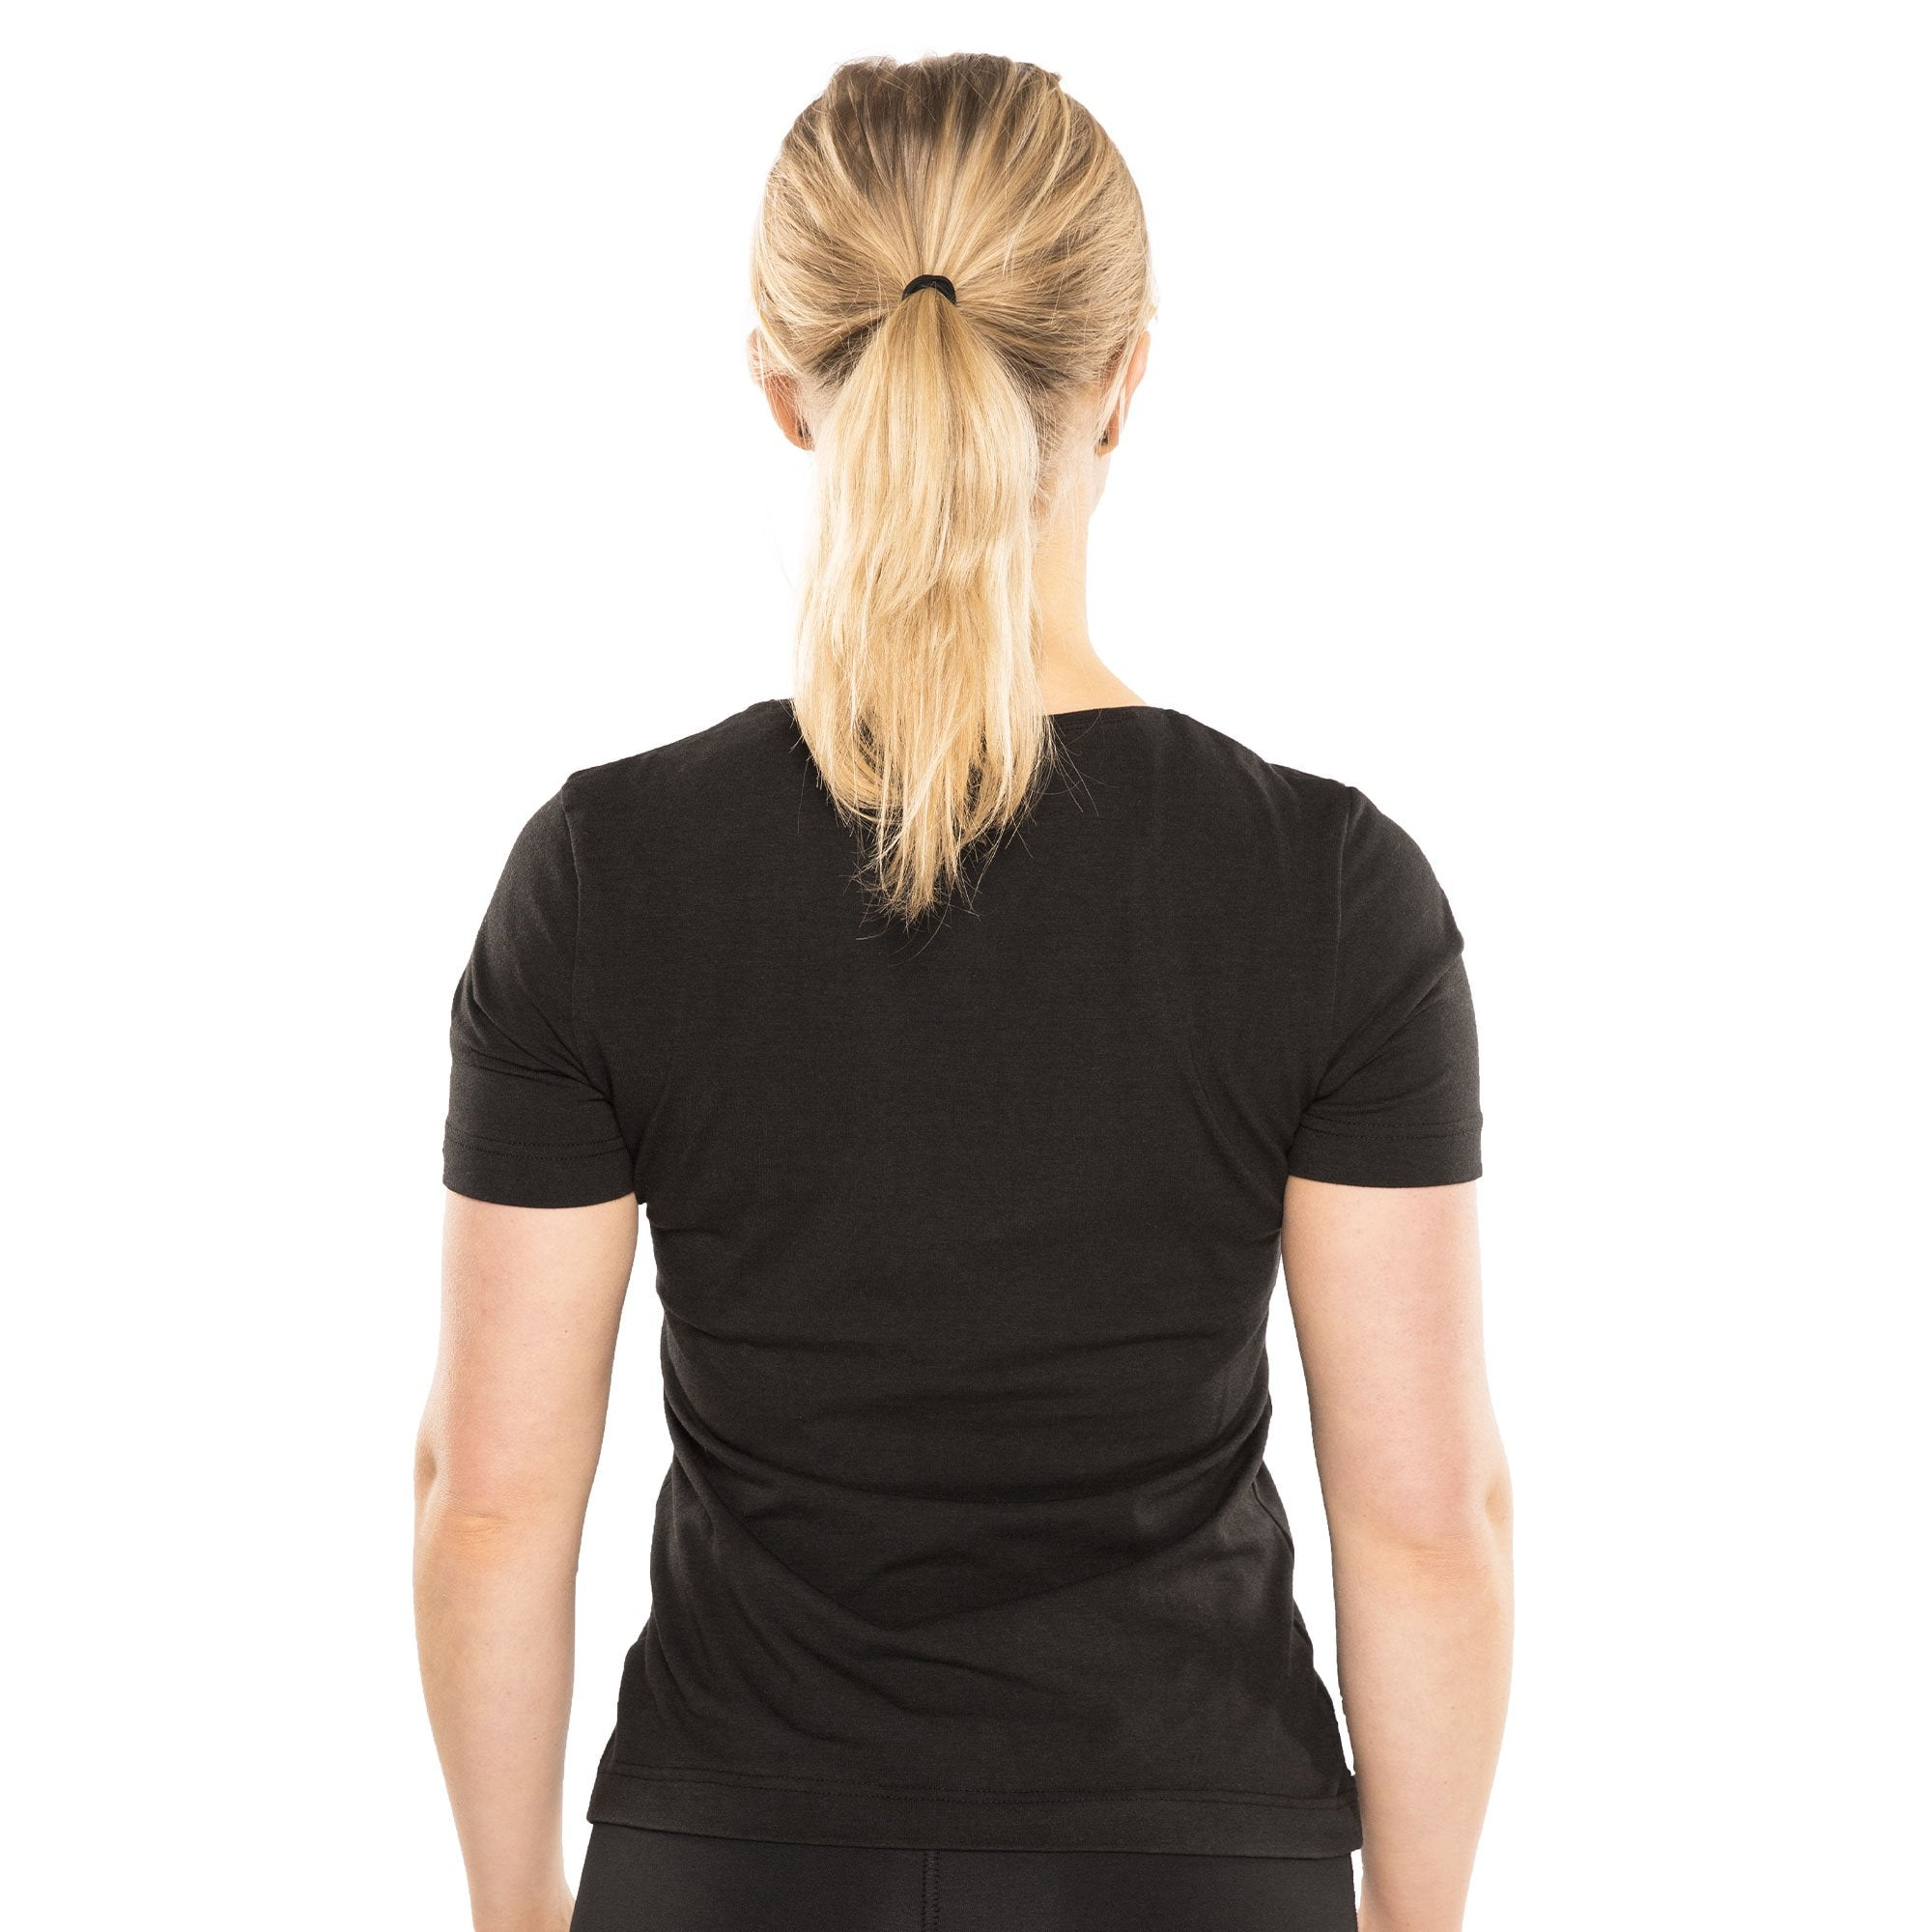 T-shirt Maria - Back on Track Sverige (5300136018075)